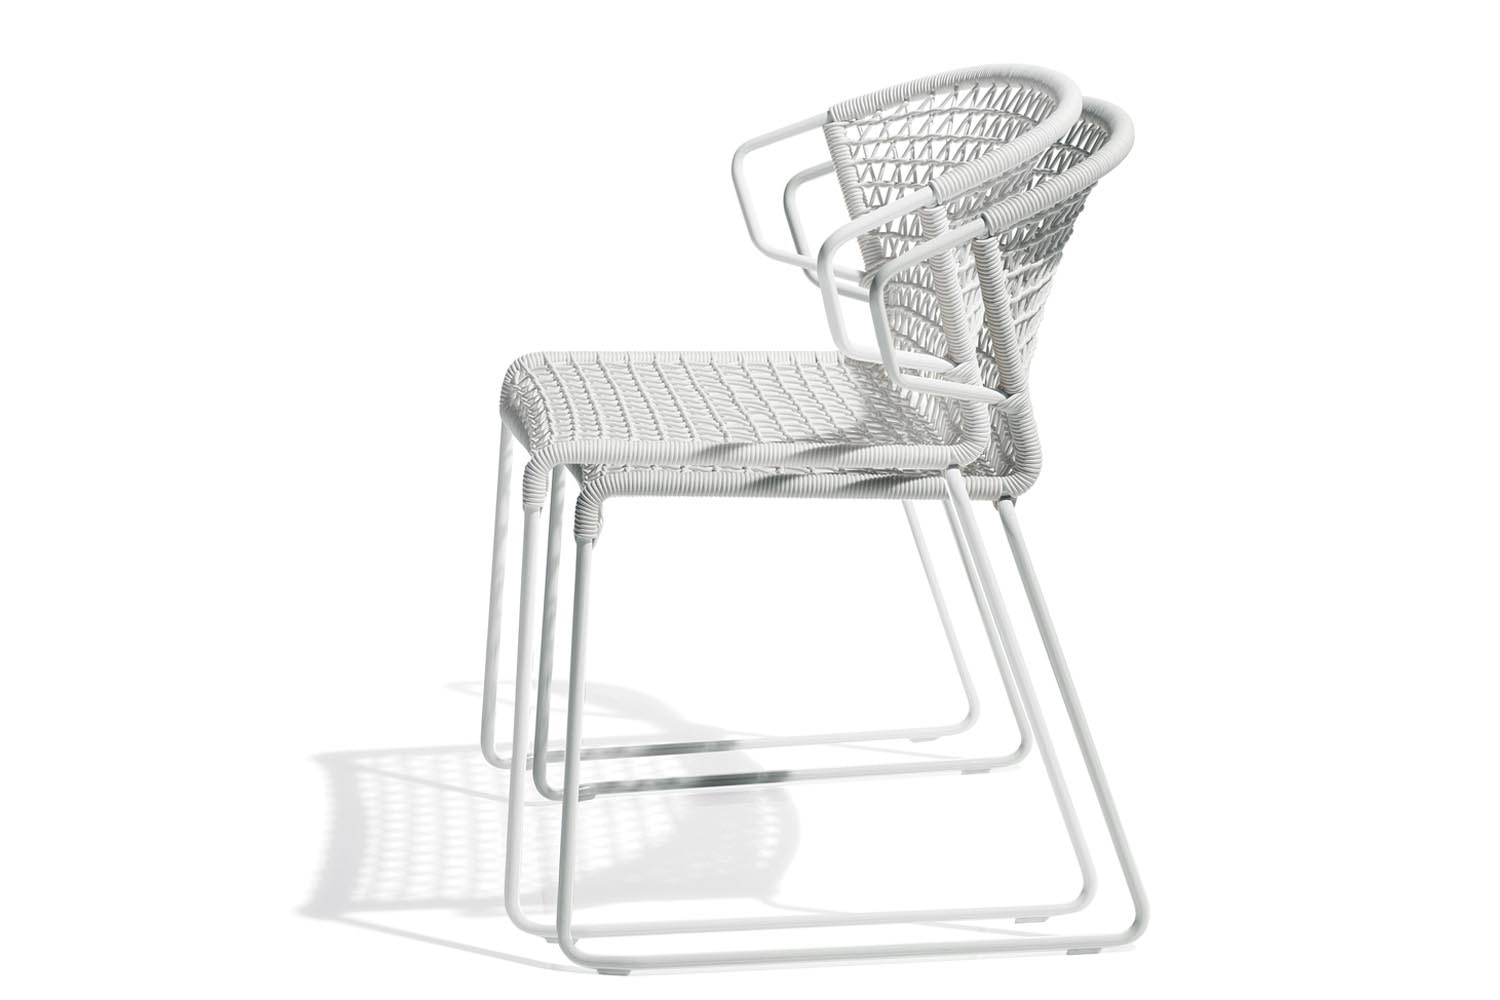 Vela Chair by Studio Hannes Wettstein for Accademia